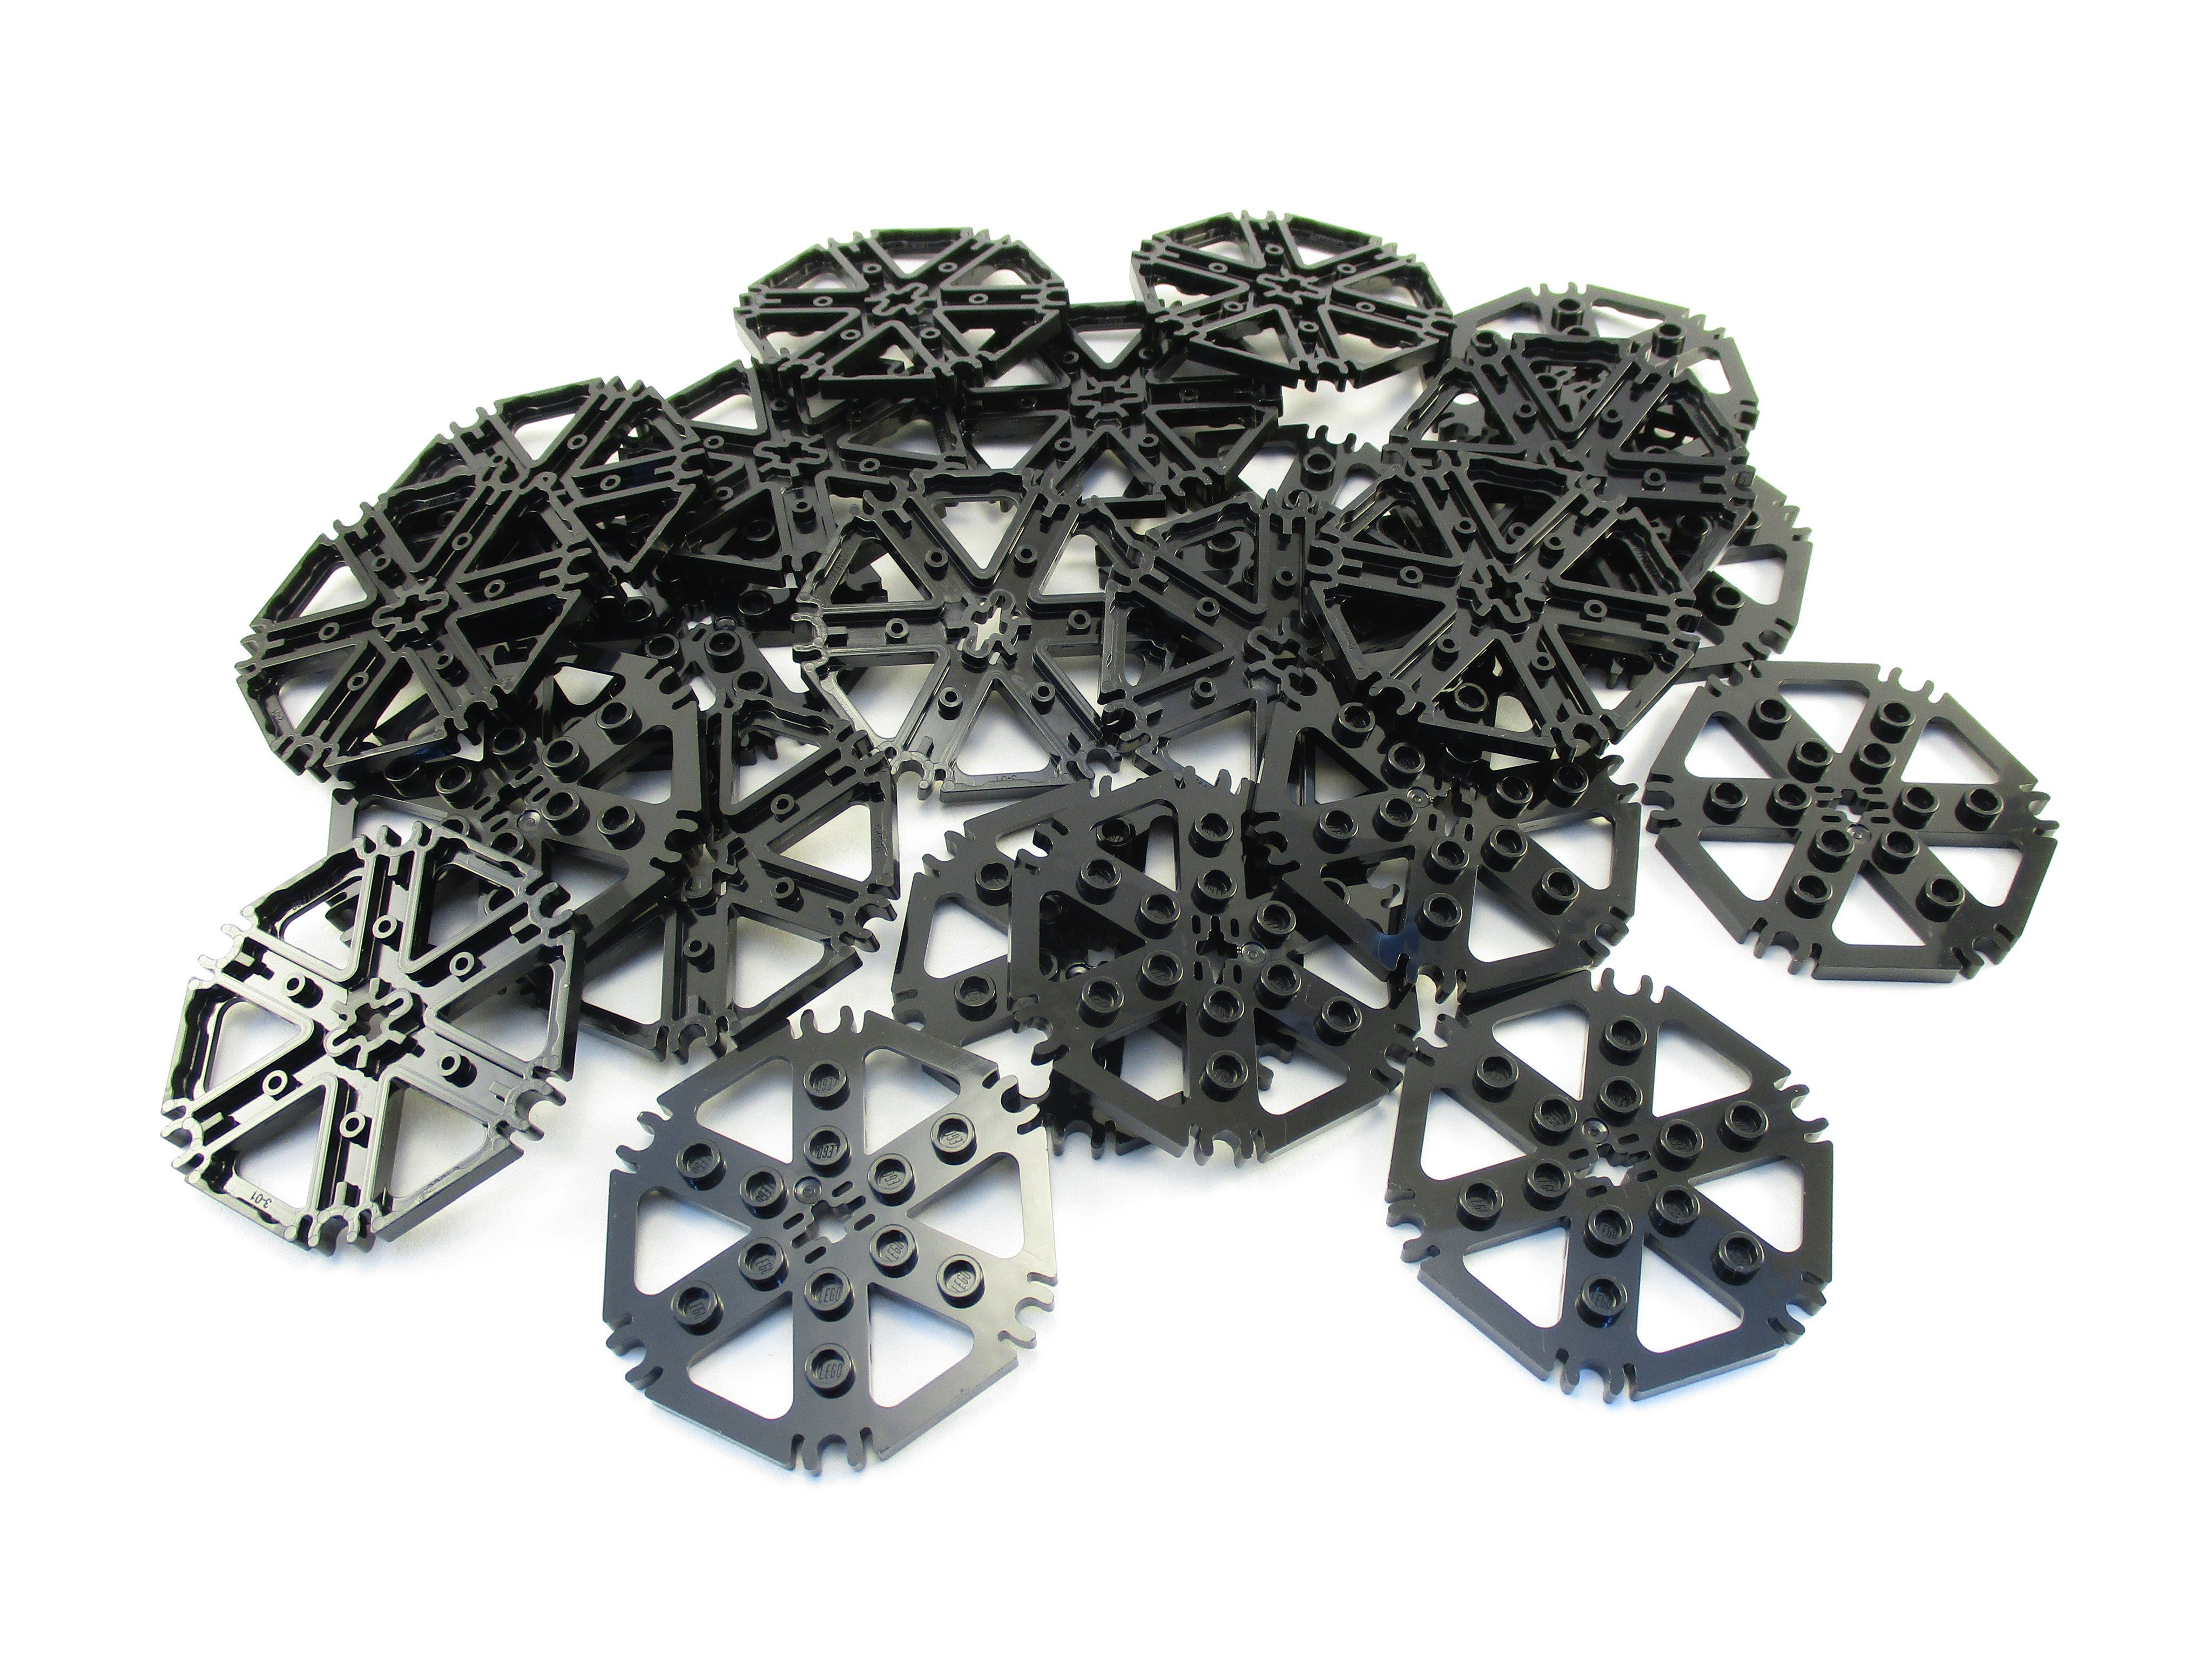 LEGO Black Technic Plate Rotor 6 Blade Water Wheel Lot of 25 Parts Pieces 64566